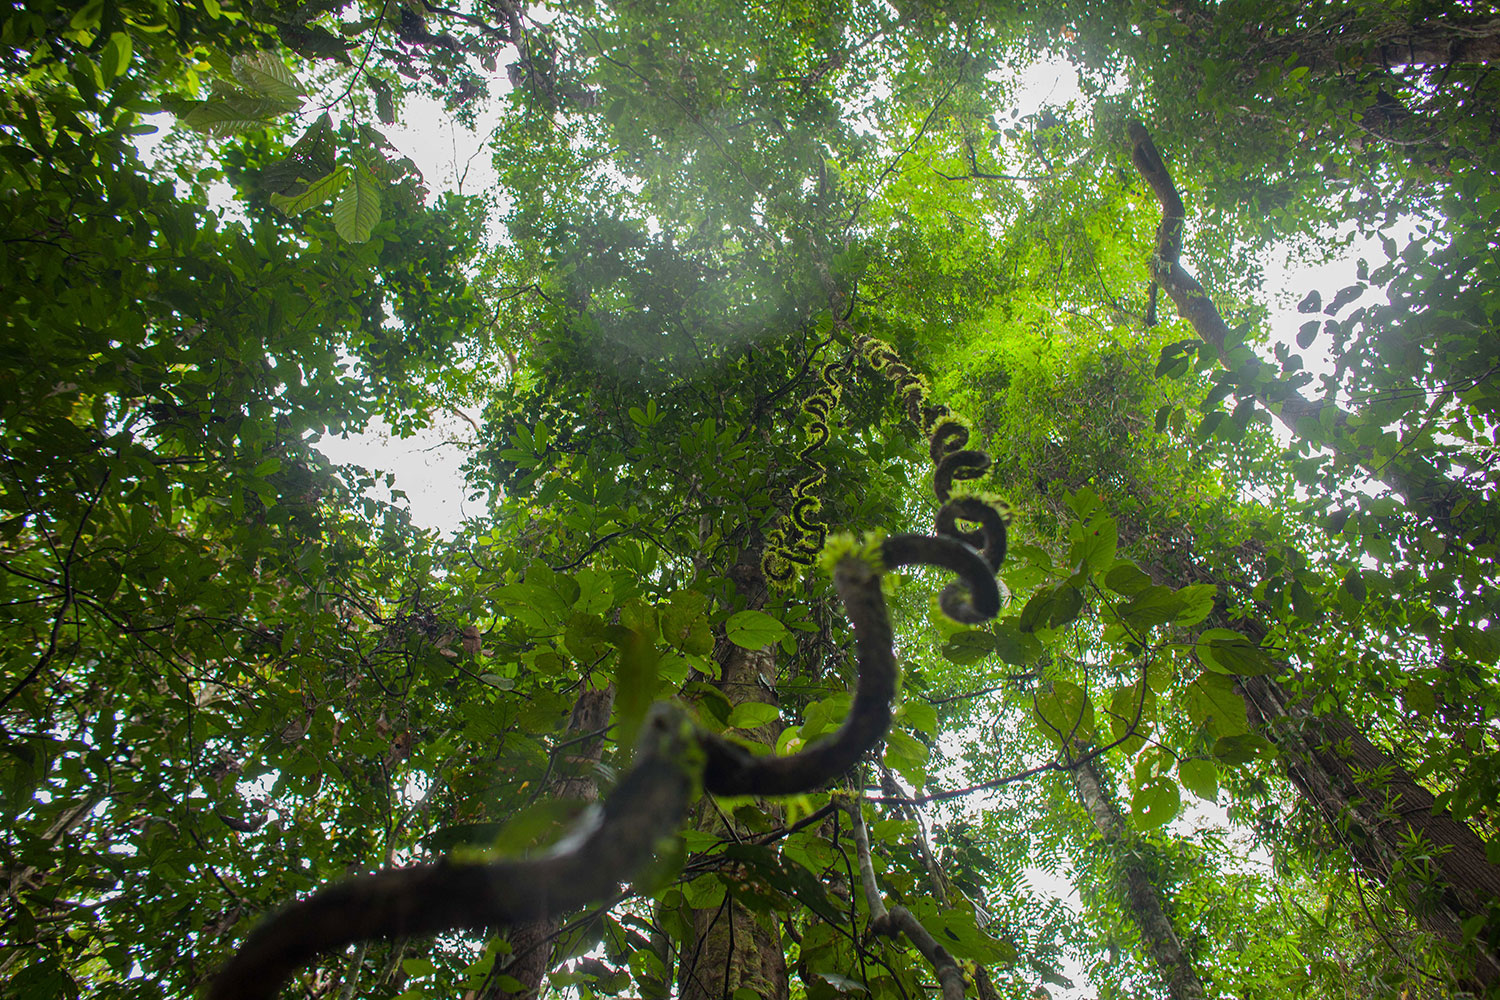 Camping in an Ancient Rainforest at Danum Valley